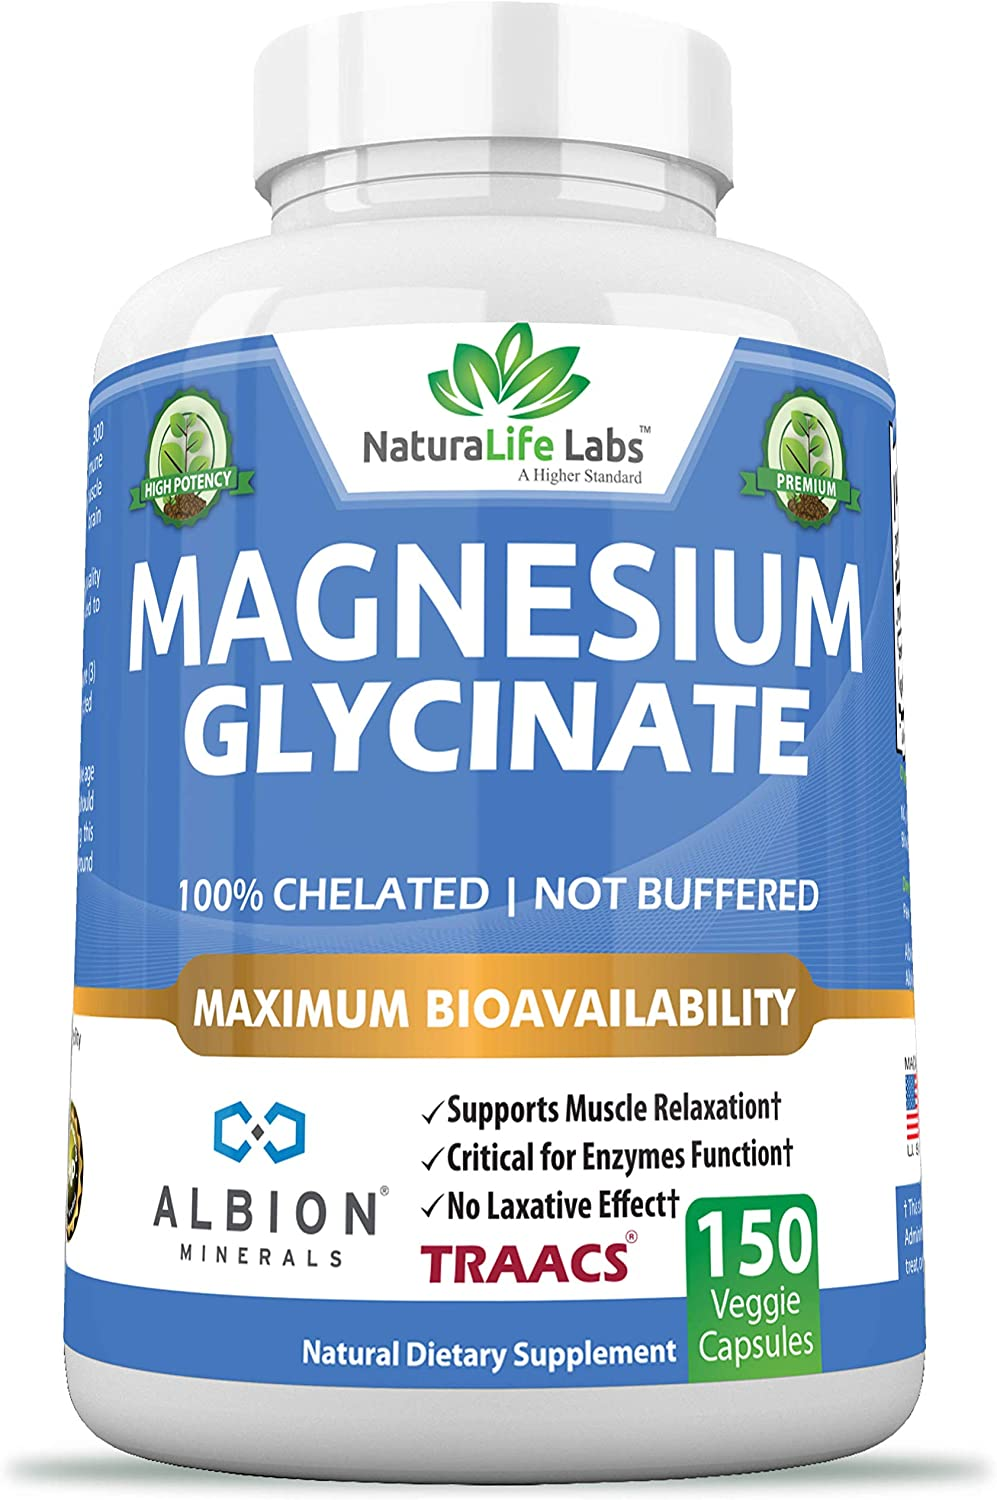 Magnesium Glycinate 100% Albion Minerals TRAACS Maximum Bioavailability Chelate No laxative effect Not buffered Vegan Helps Function of muscles, bones, heart Non-GMO 150 capsules